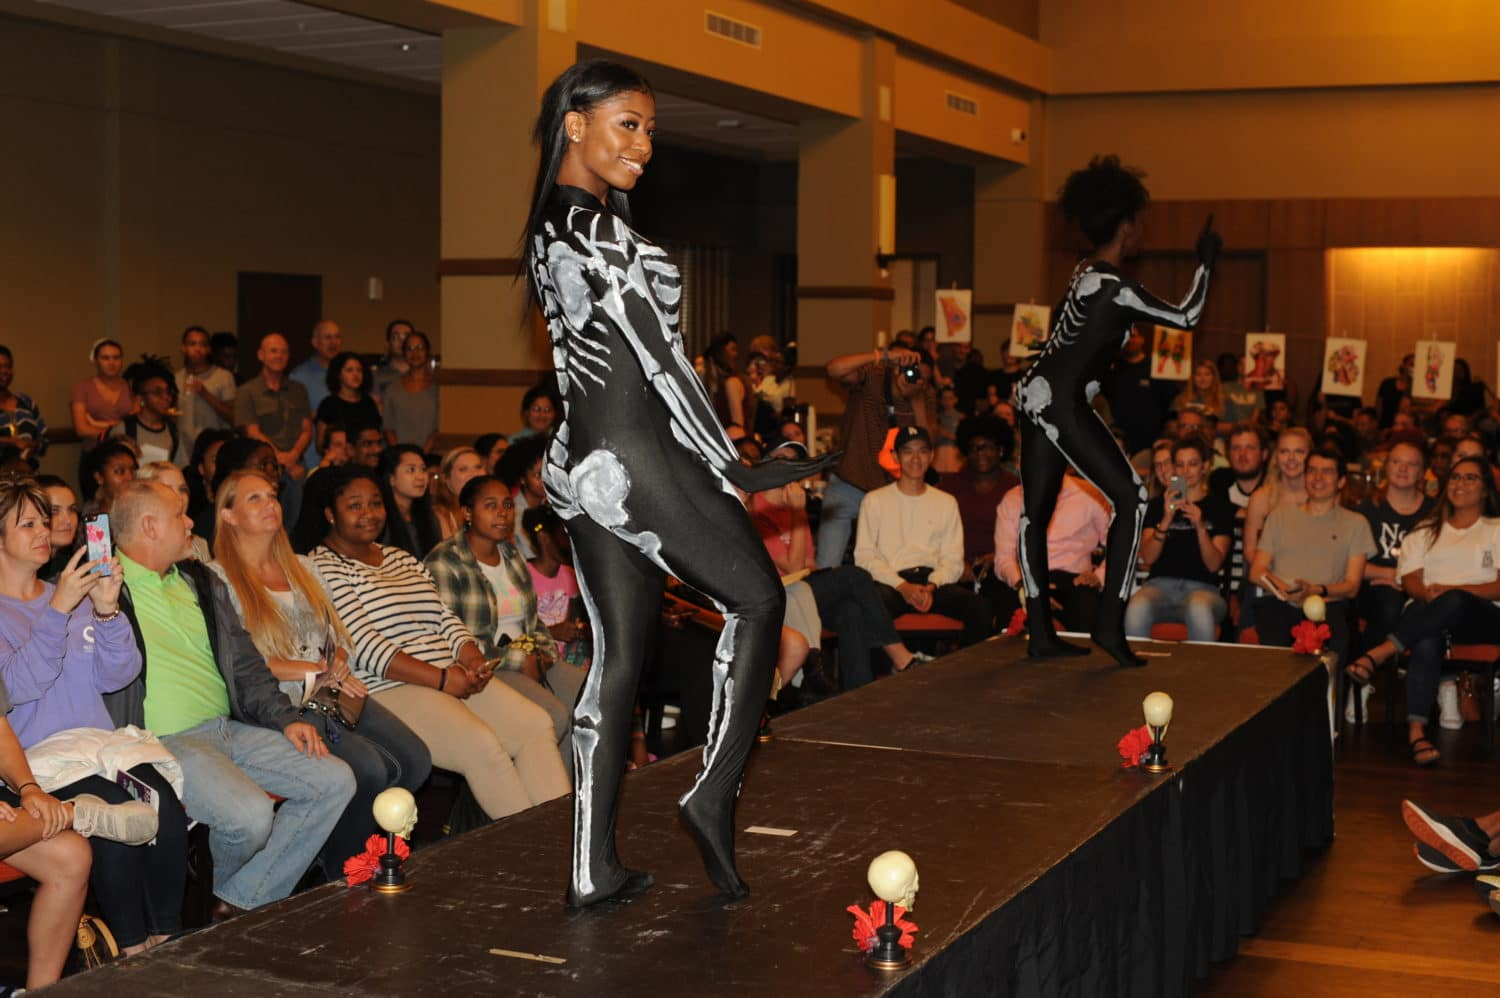 Copy of Phi Delta Epsilon Anatomy Fashion Show - Oglethorpe University